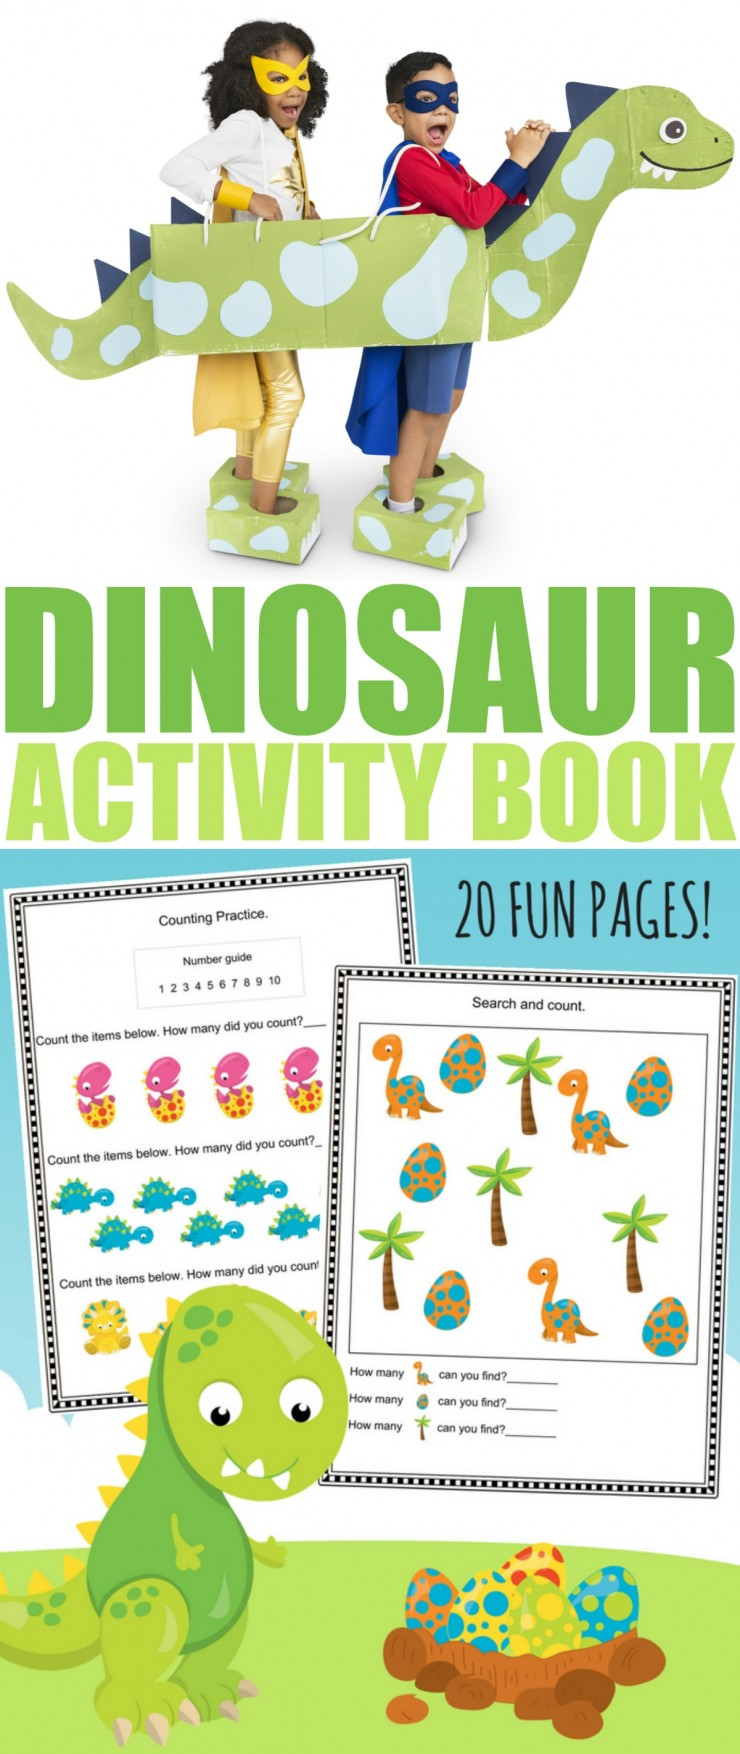 Free Printable Dinosaur Activity Book - Frugal Mom Eh!